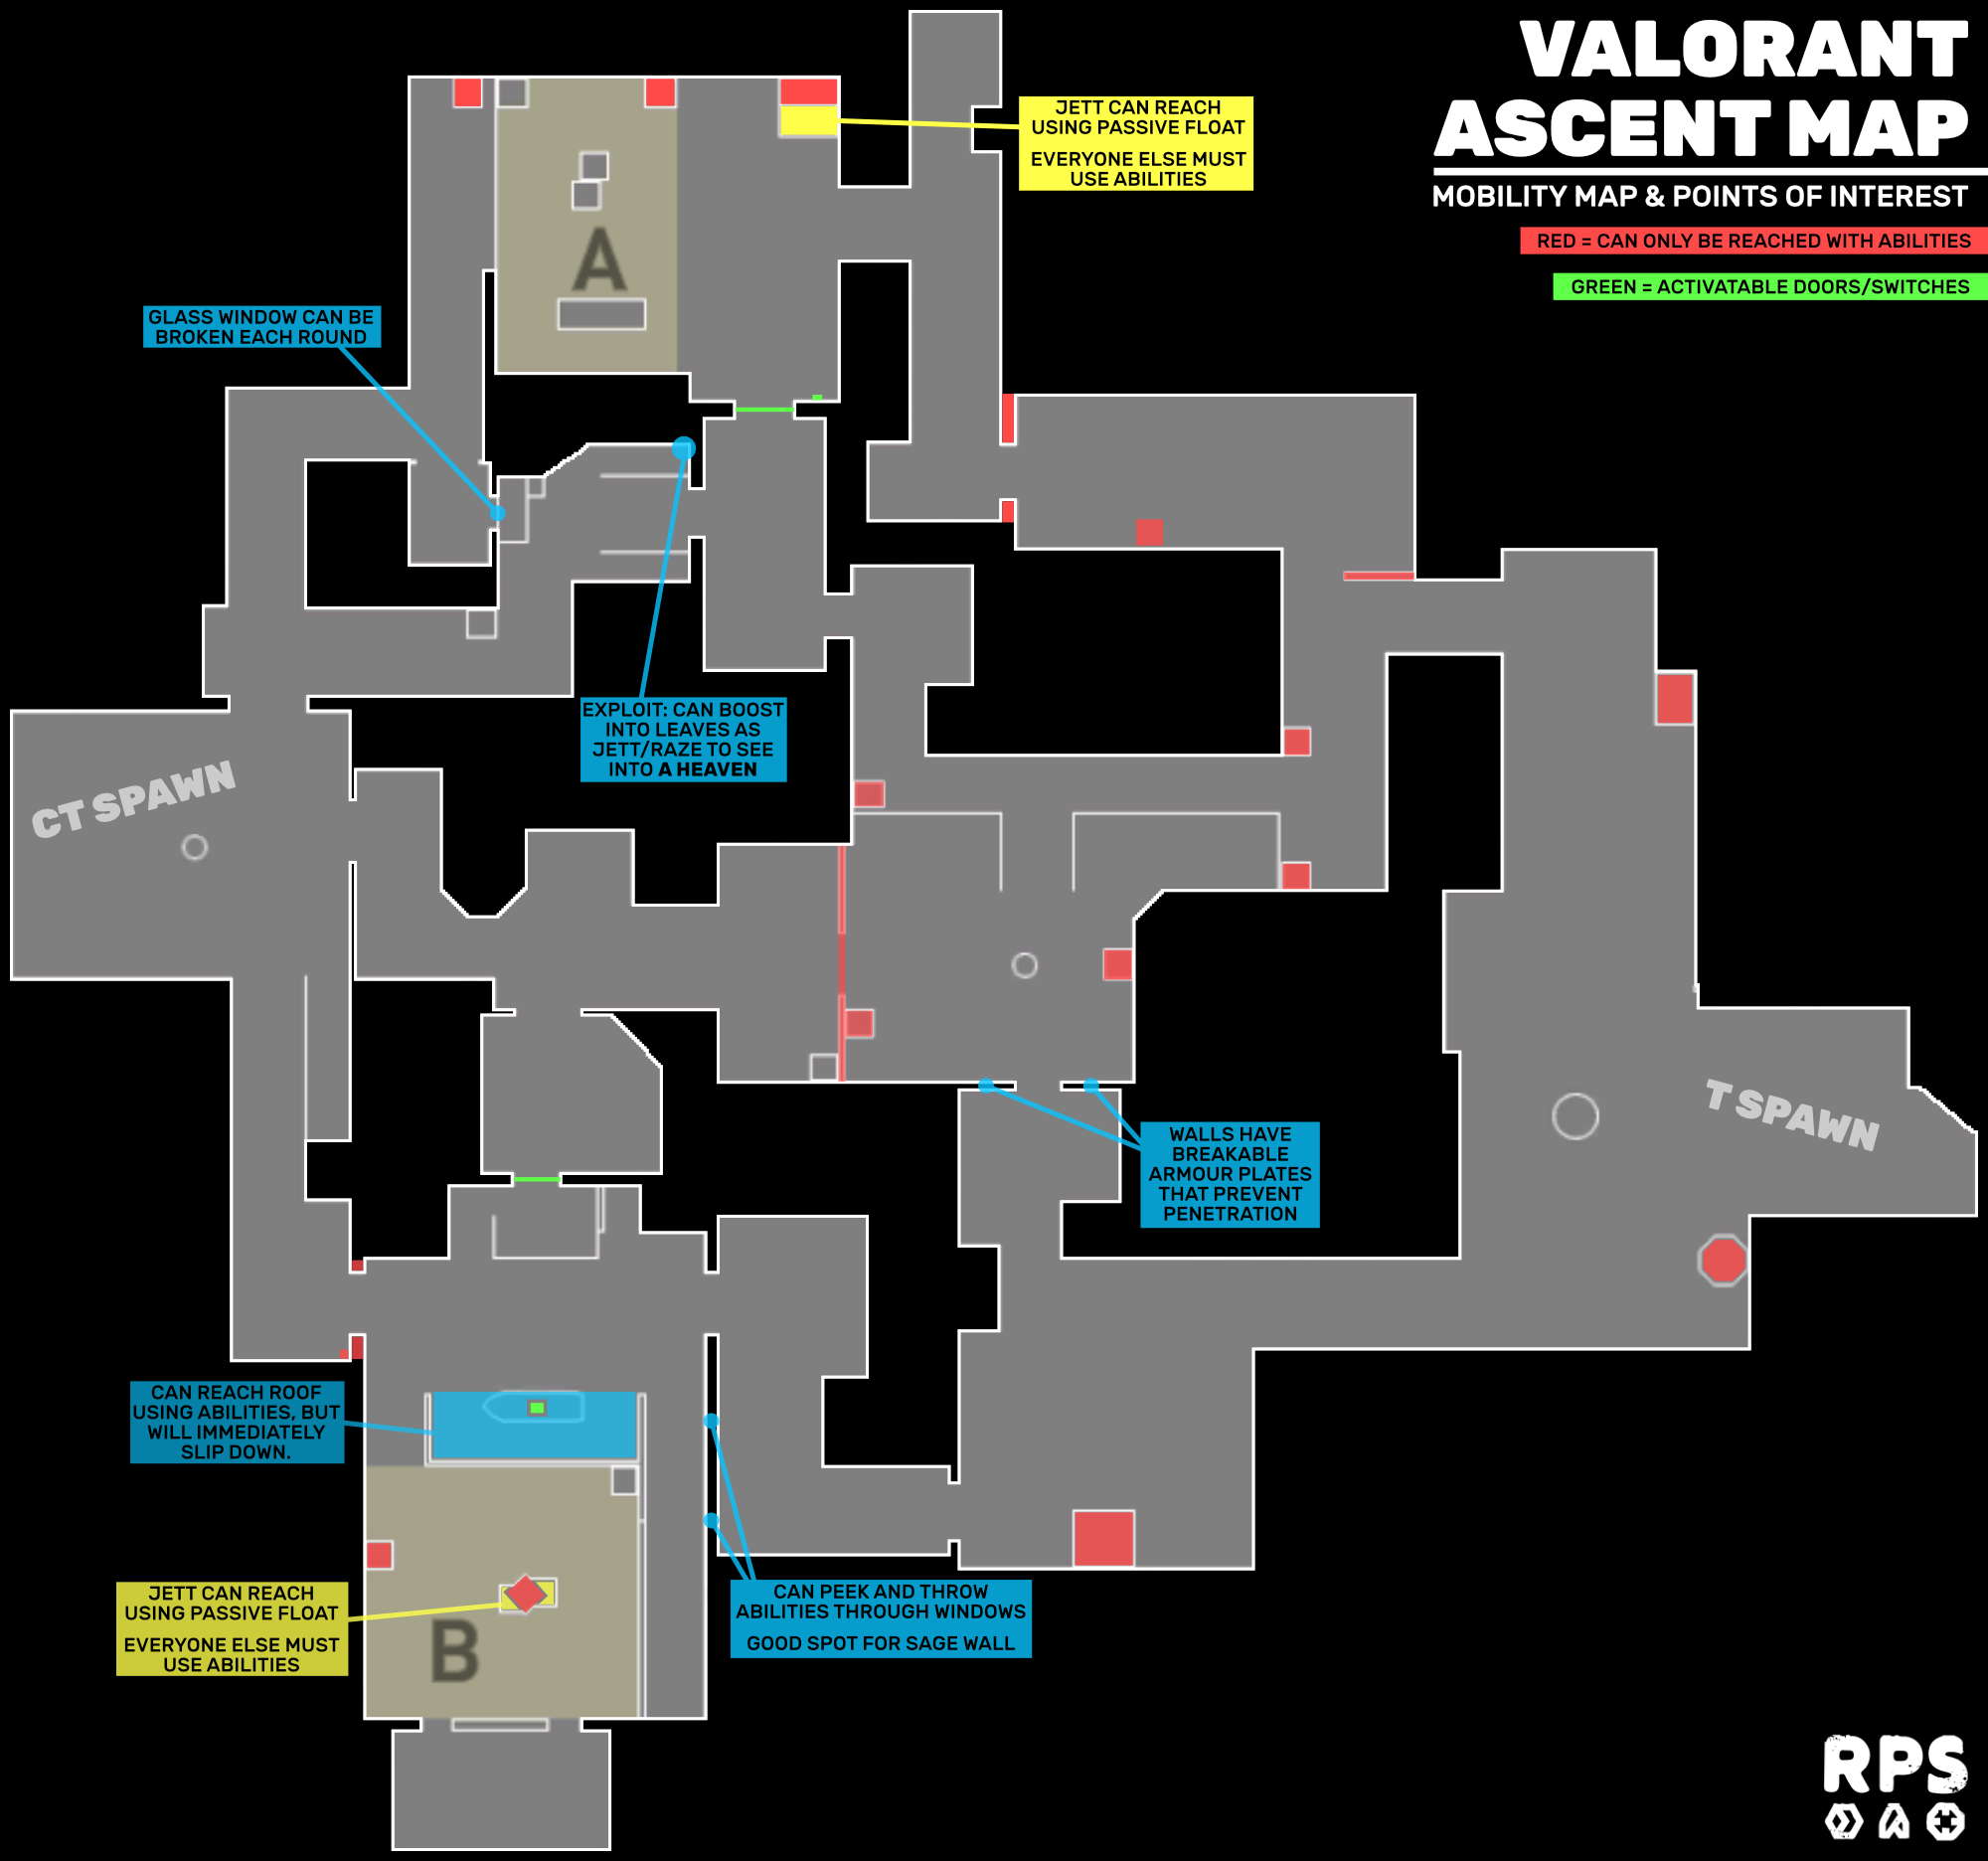 Valorant Ascent map guide